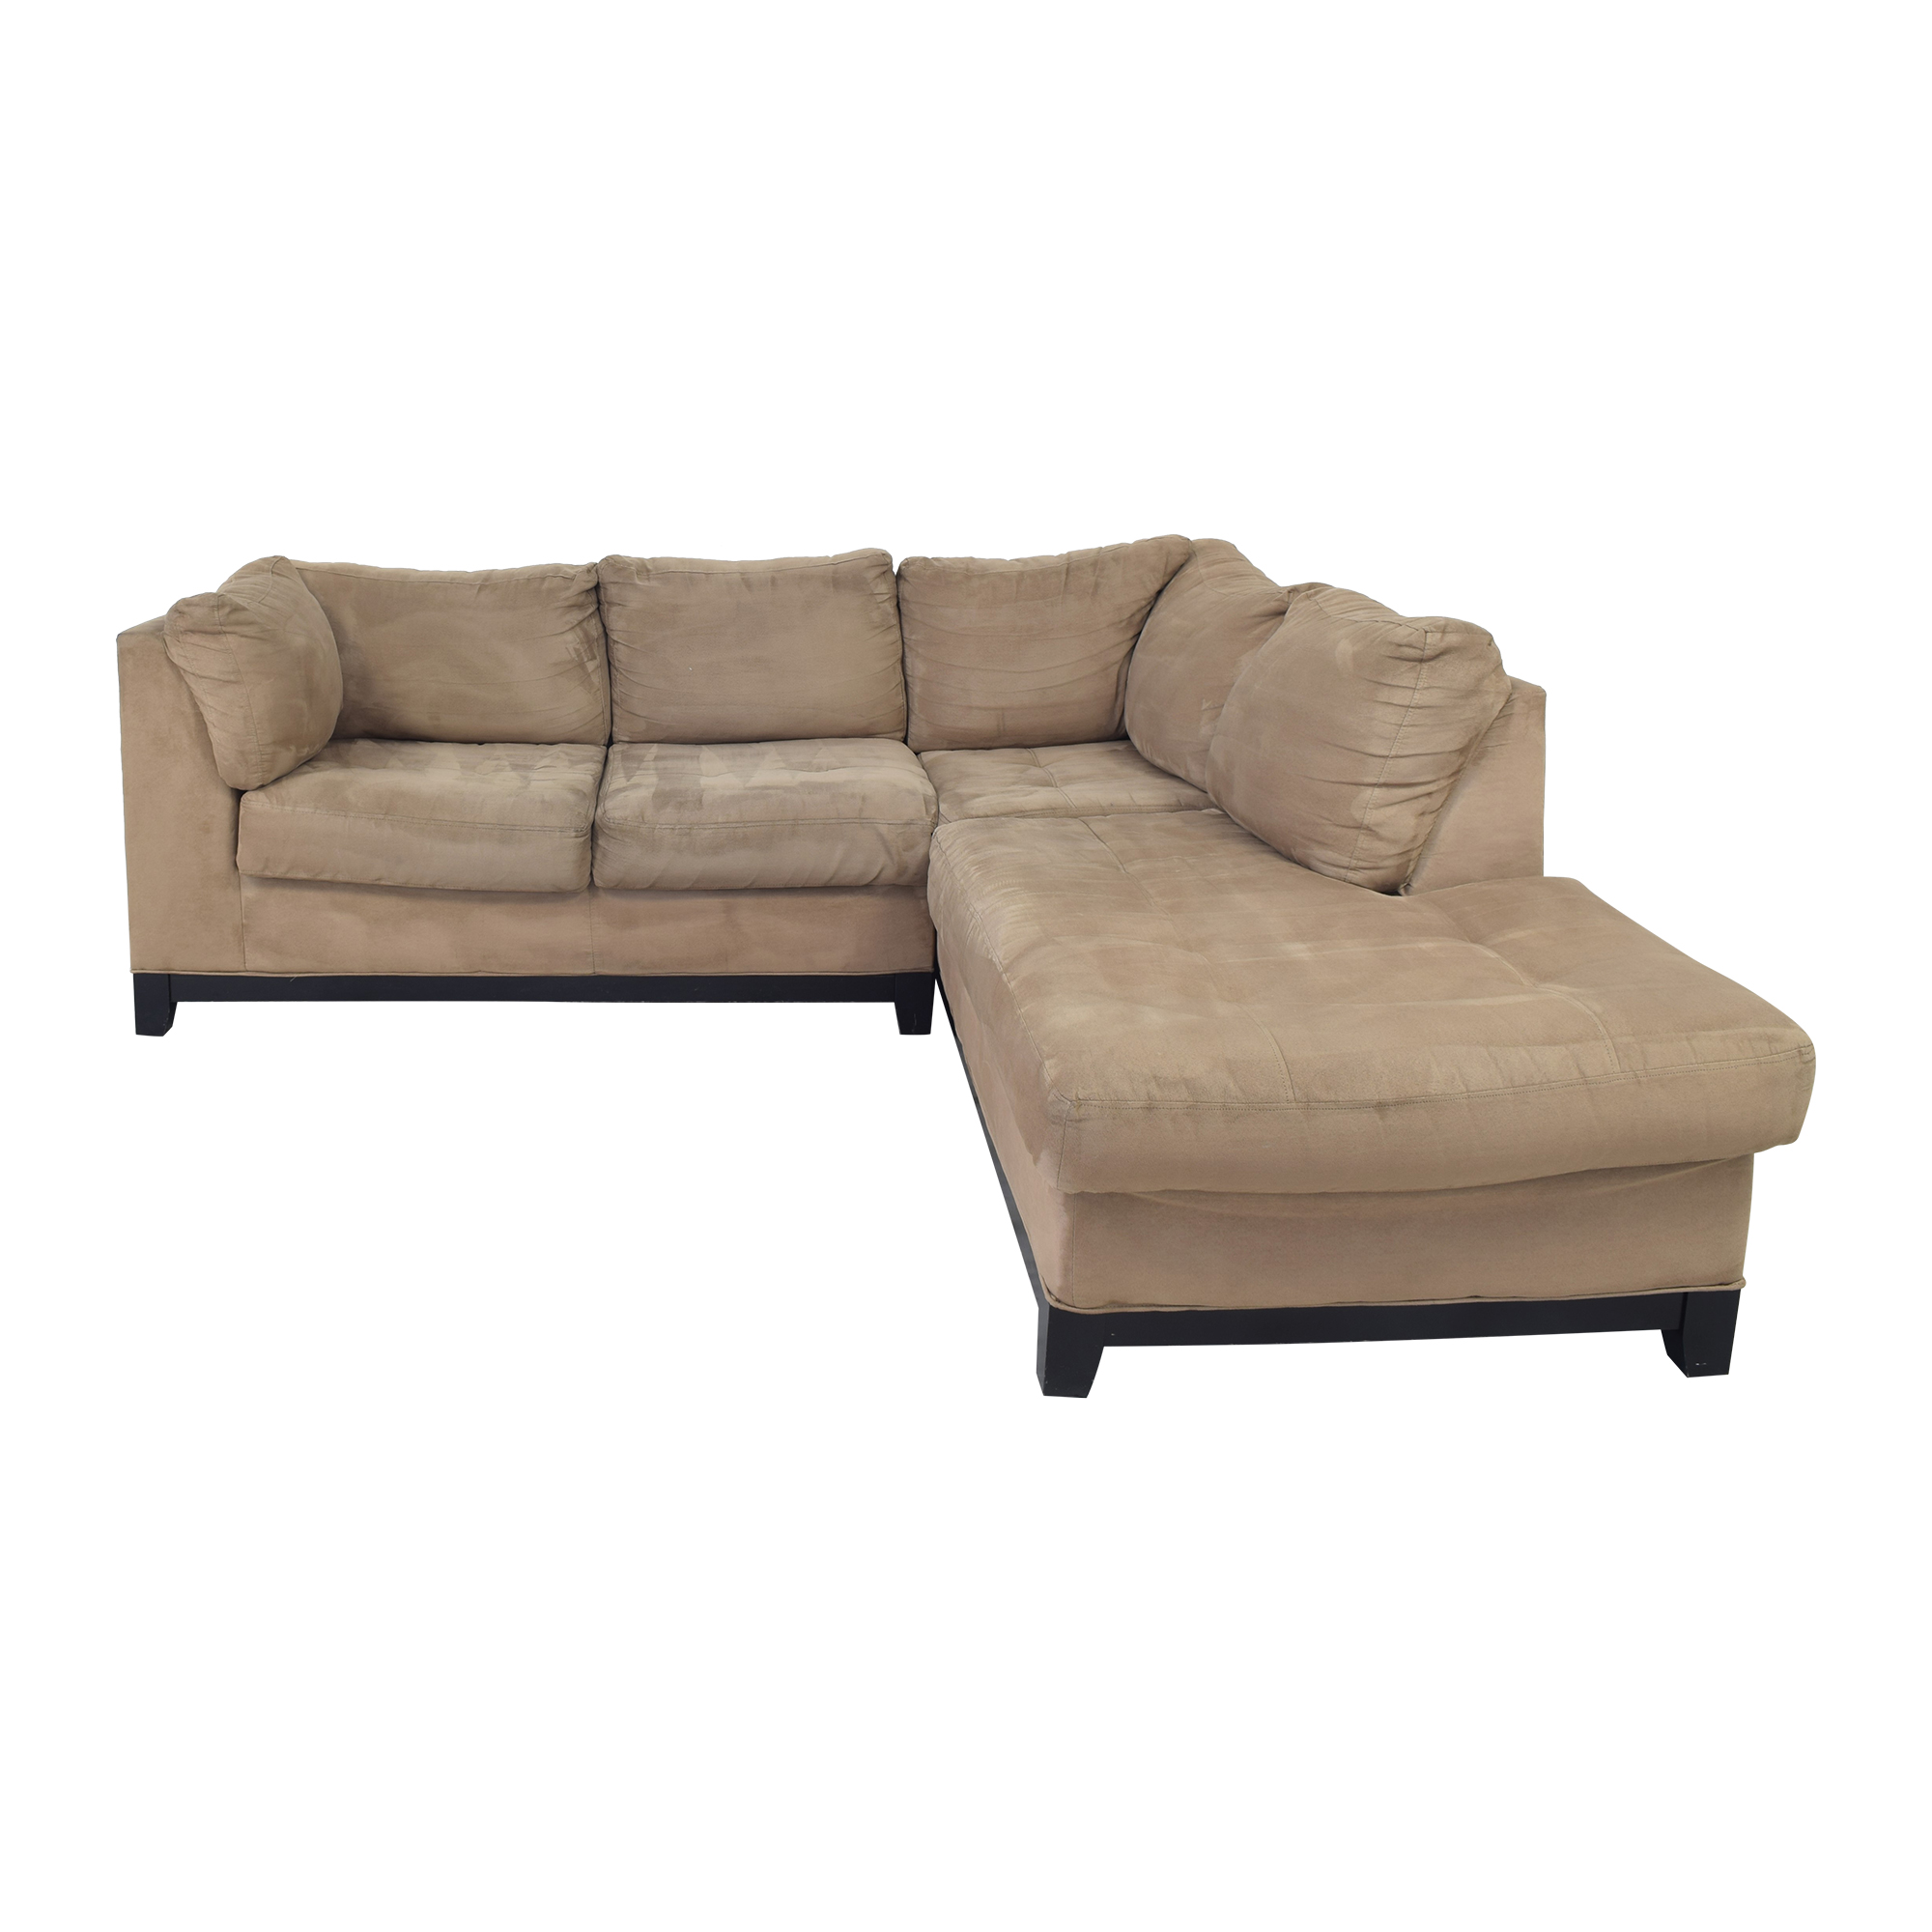 shop Raymour & Flanigan Kathy Ireland Chaise Sectional Sofa Raymour & Flanigan